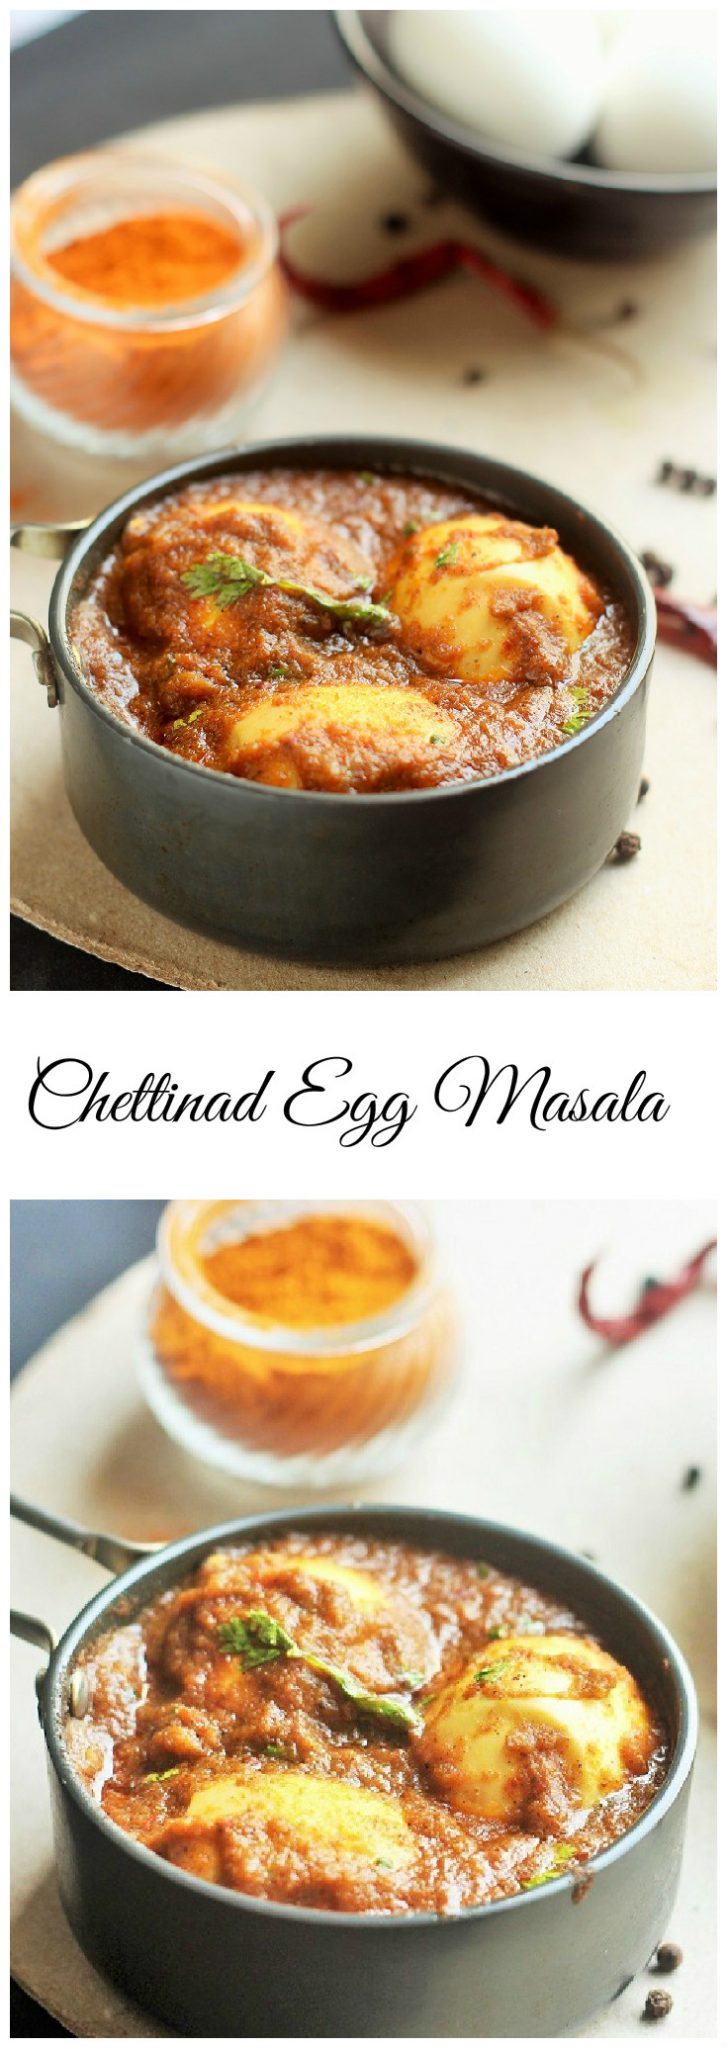 Easy and delicious Chettinad Egg Masala